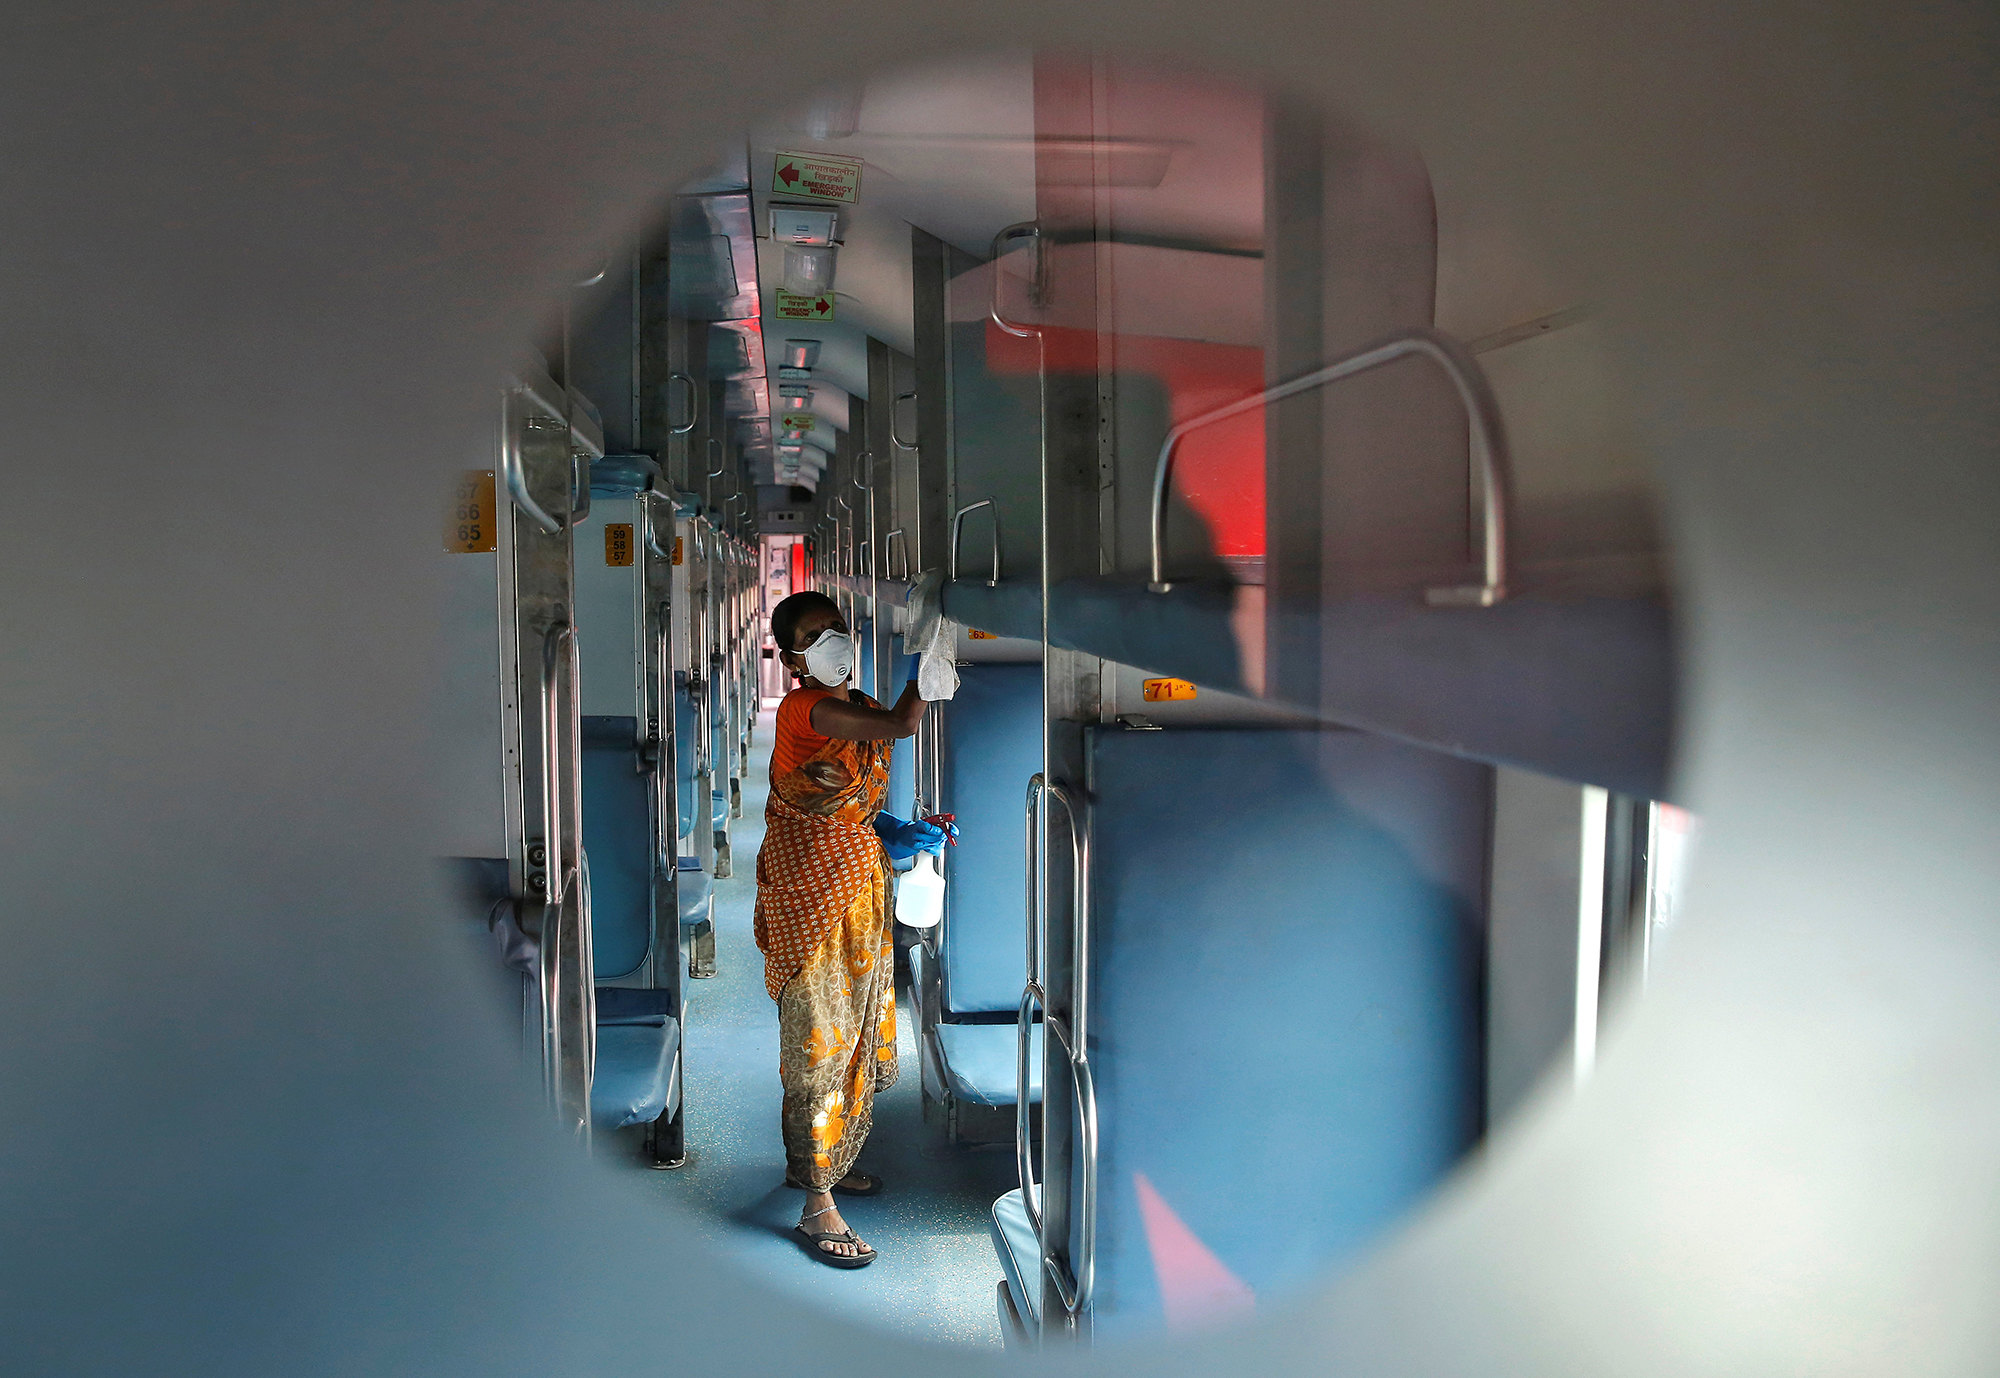 A worker disinfects the interiors of a passenger train parked at a railway yard as a preventive measure against coronavirus, on the outskirts of Kolkata, India, March 16, 2020. REUTERS/Rupak De Chowdhuri